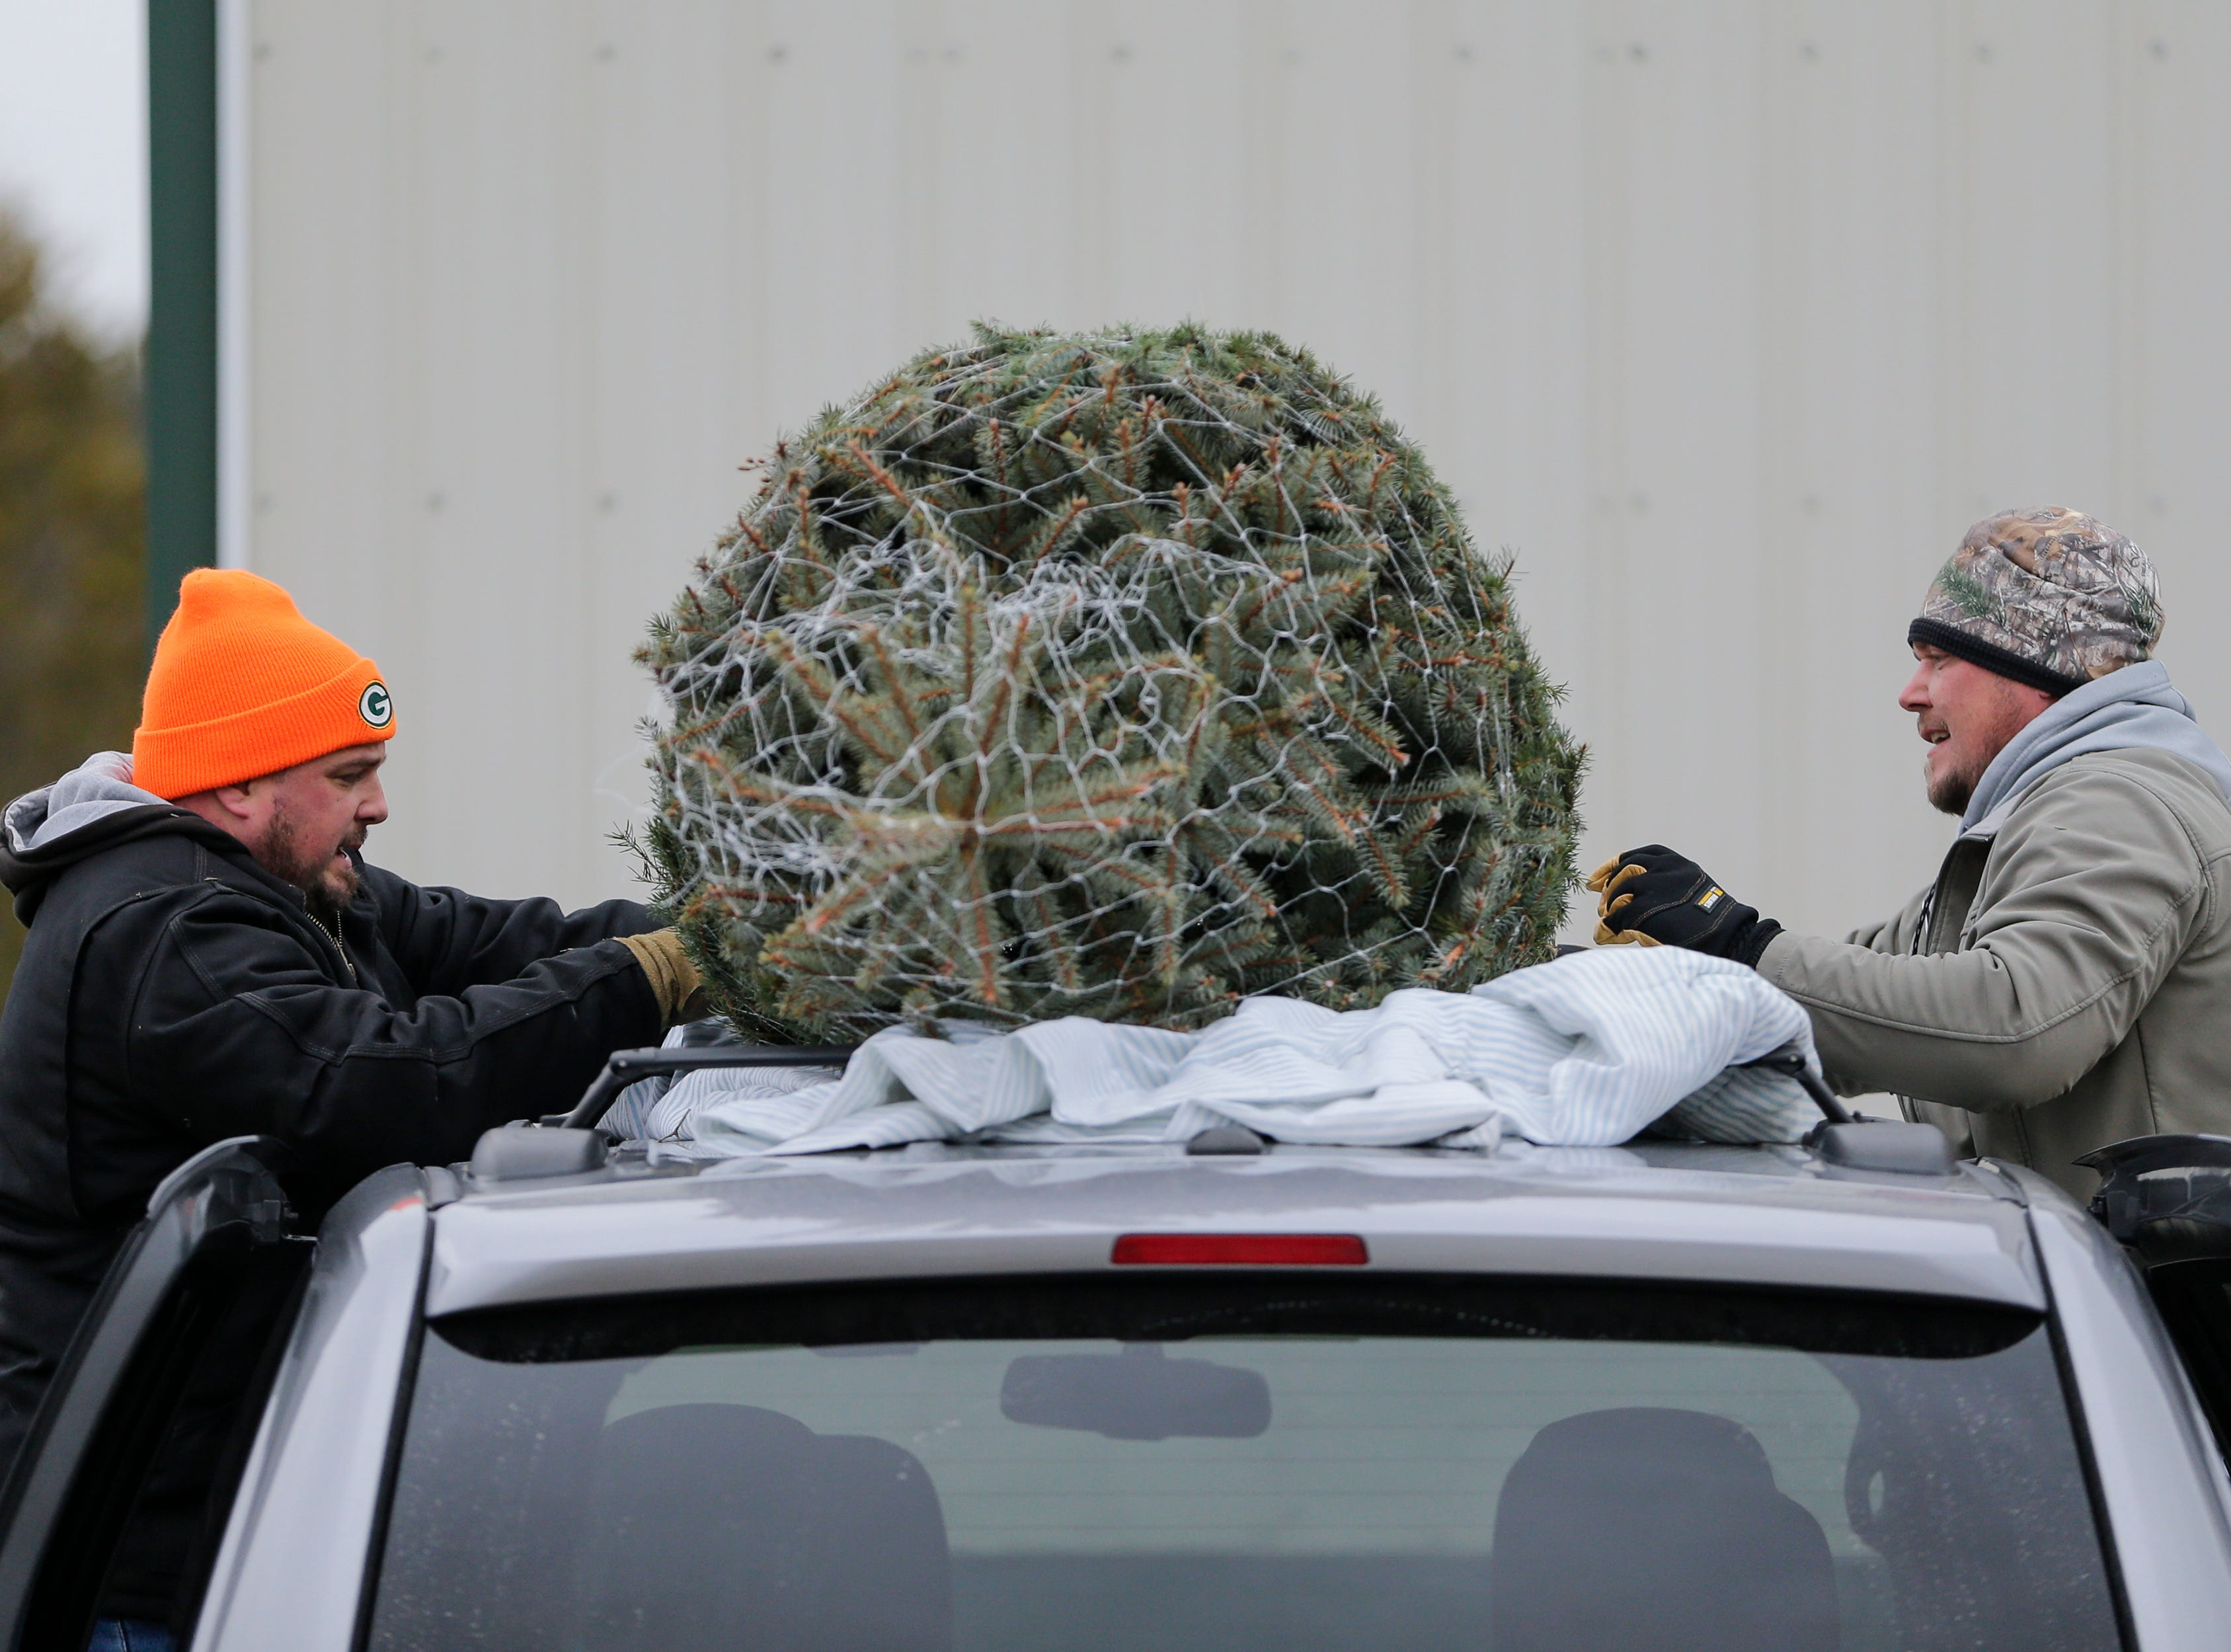 Andy Zigmunt, right, straps his tree to the top of his family's car at Taylor Trees Saturday, December 1, 2018, in Mishicot, Wis. Joshua Clark/USA TODAY NETWORK-Wisconsin